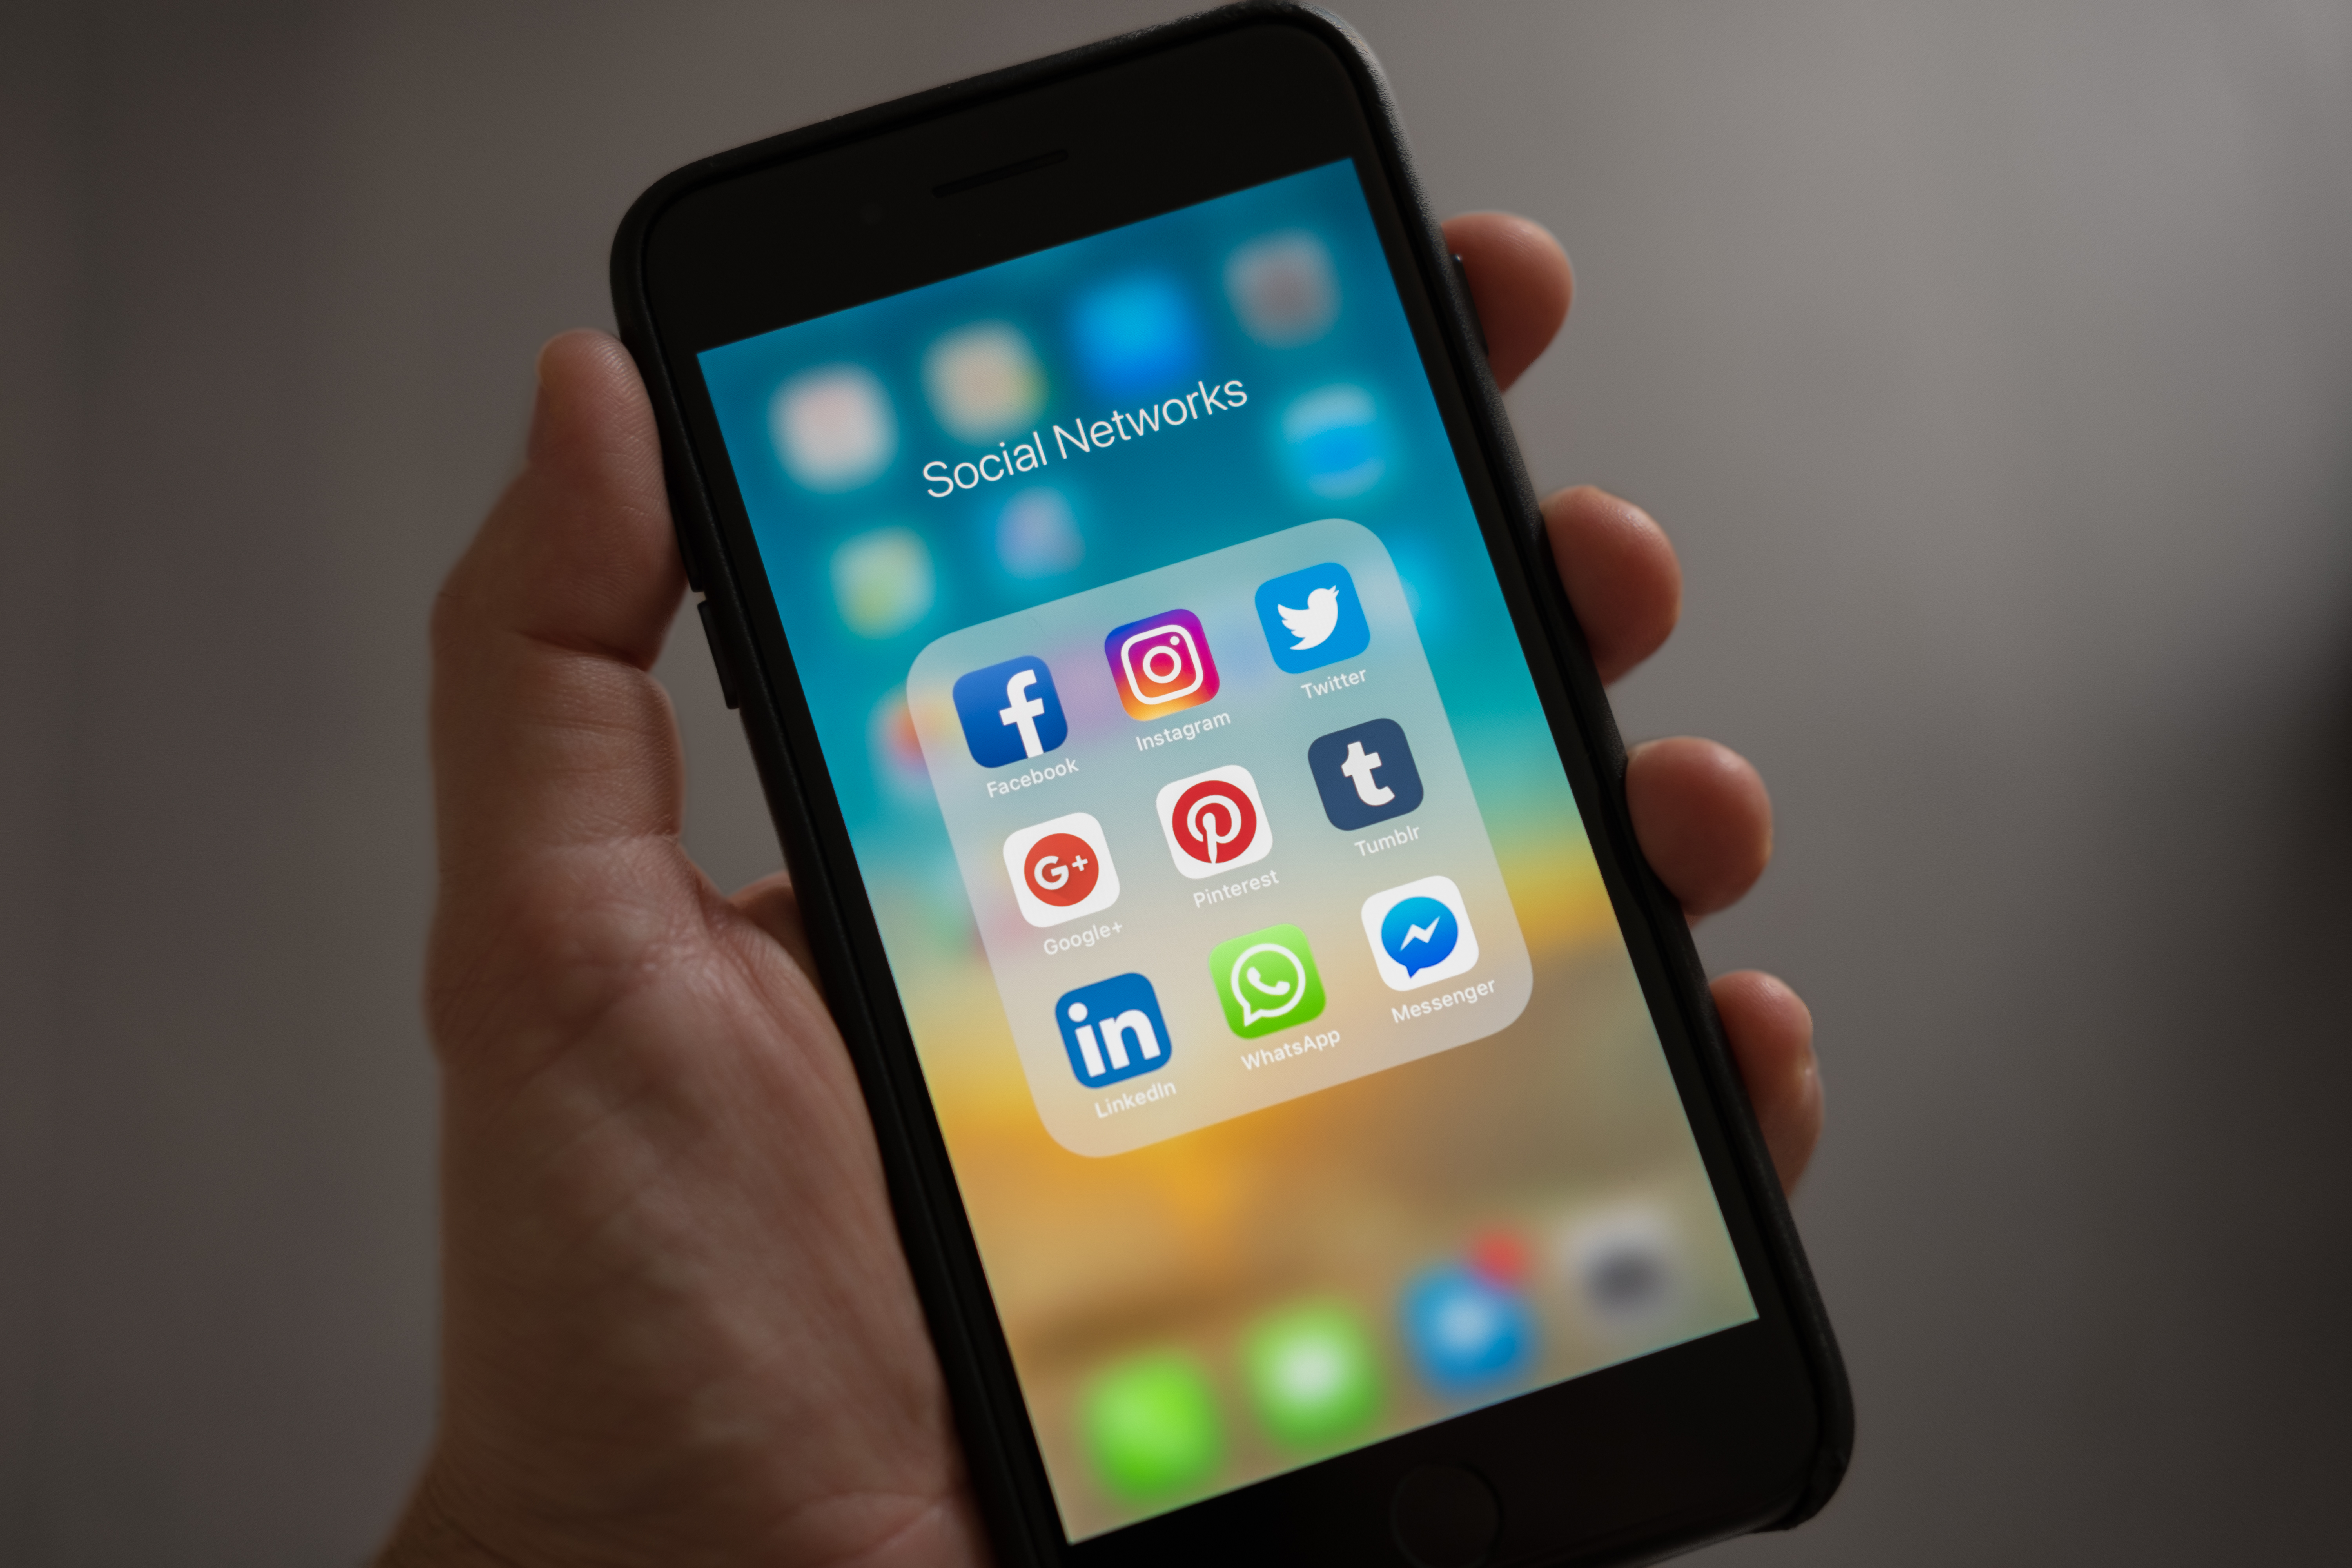 iPhone mit Social Media Apps